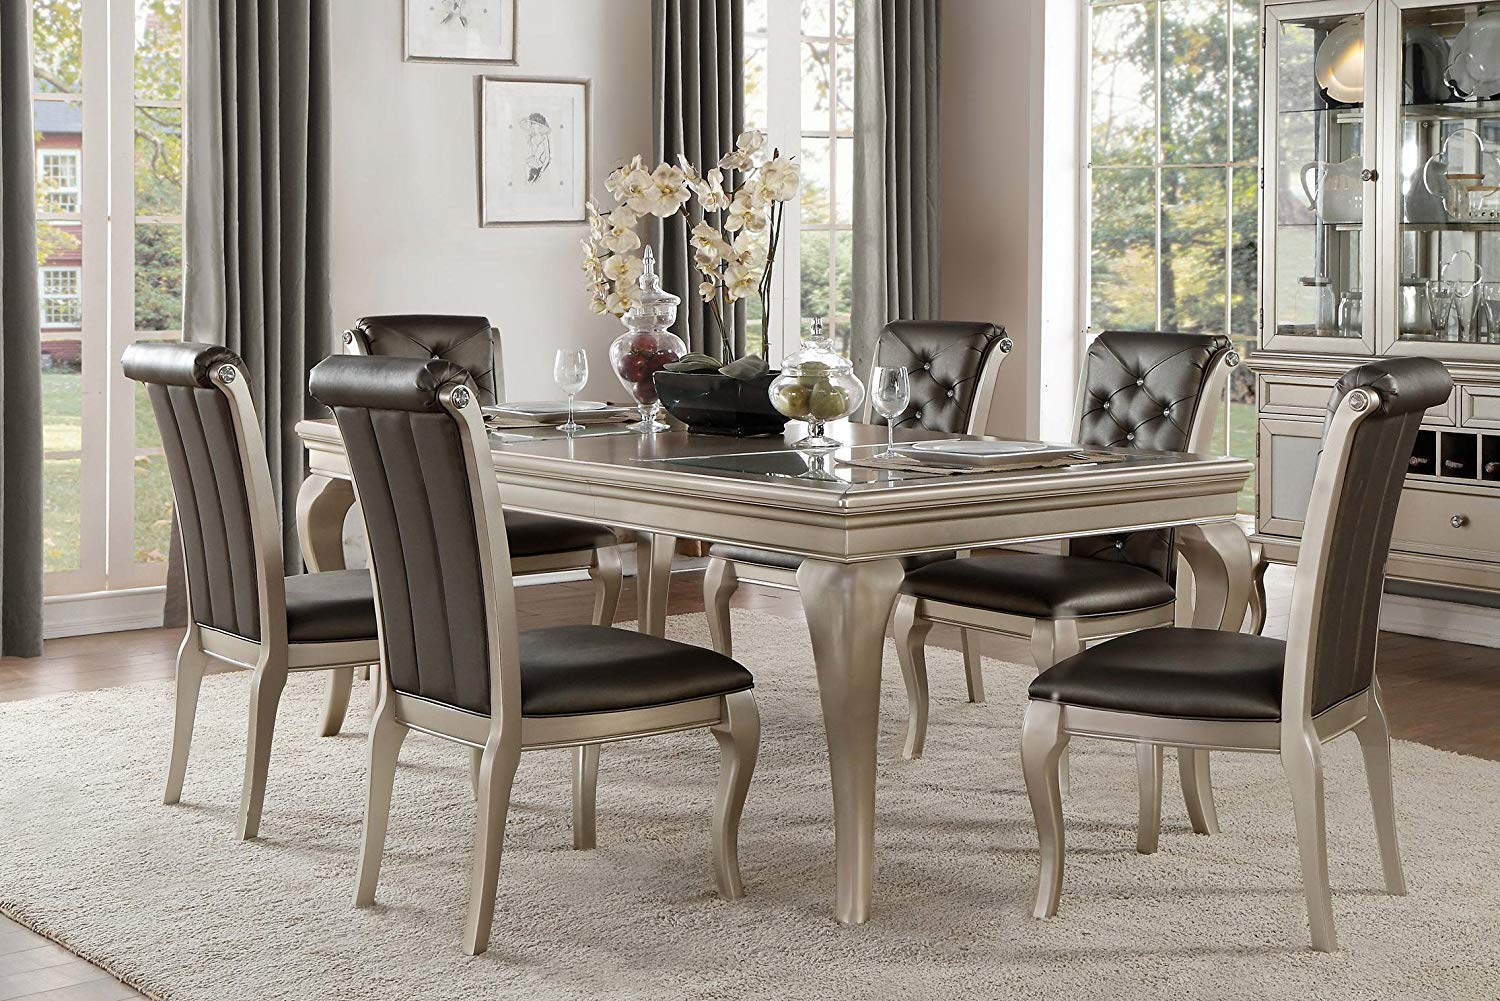 french modern piece dining set with glass insert top accent pieces for room table champagne silver upholstered chairs chair sets outdoor end tables interior ideas contemporary